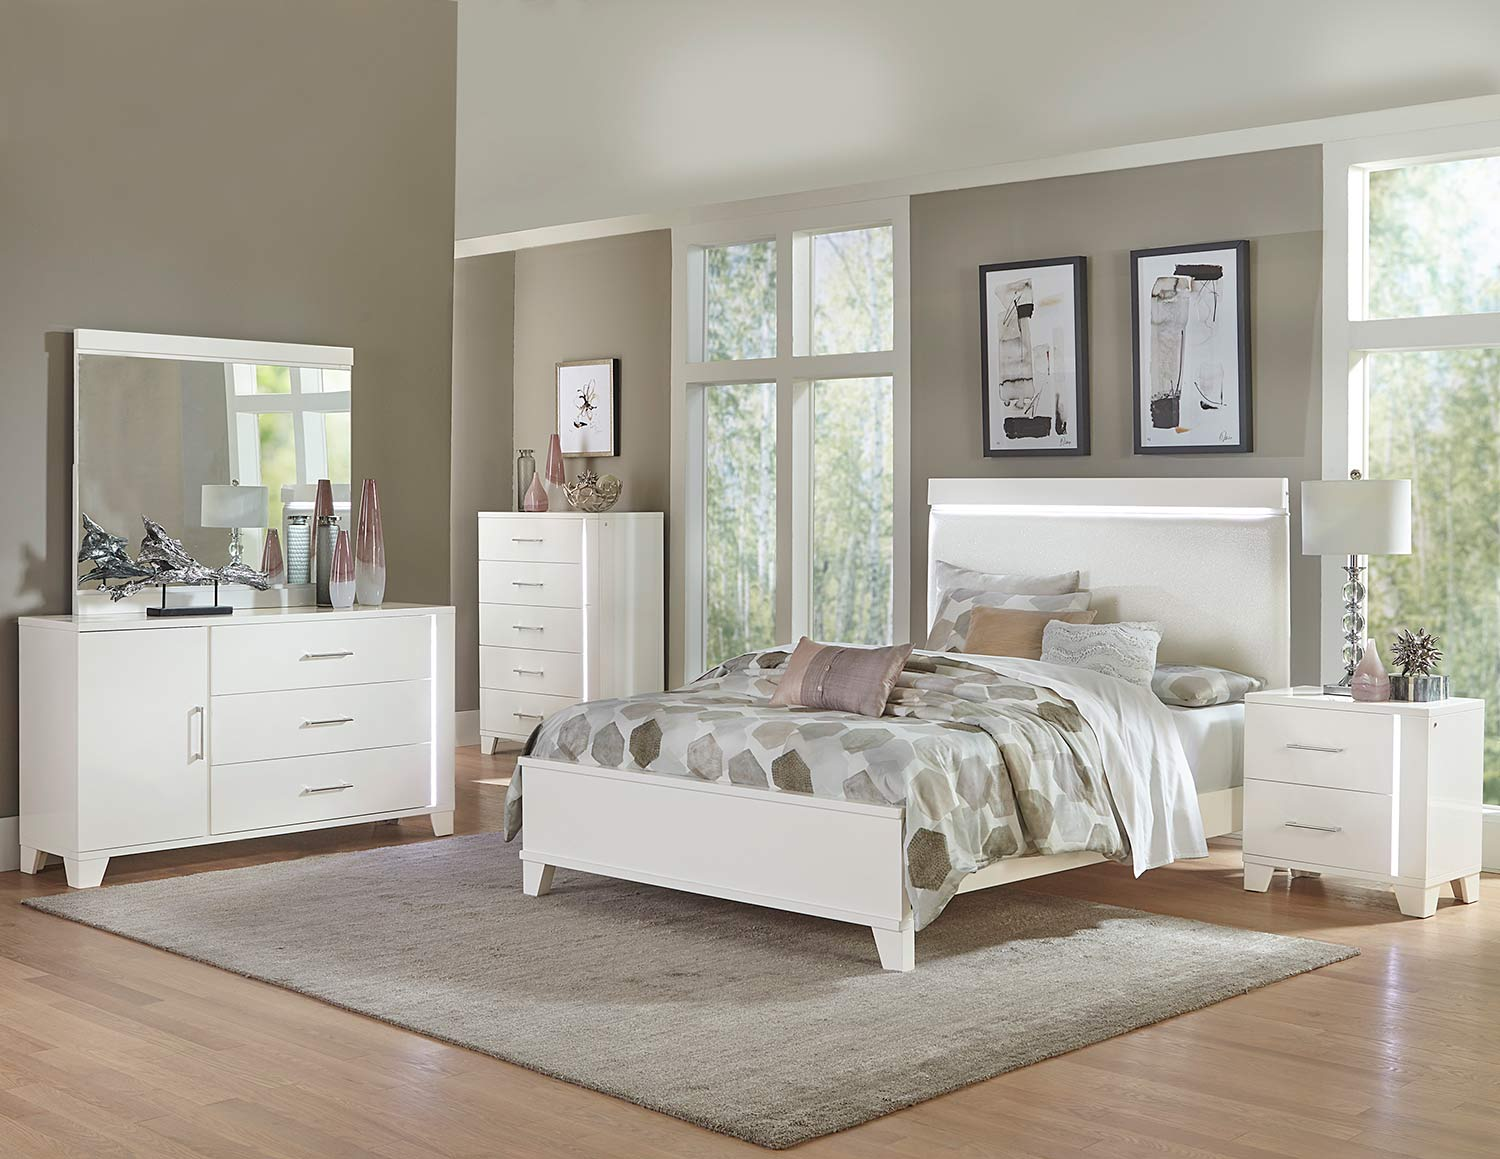 Homelegance Kerren or Keren Bedroom Set - White High Gloss